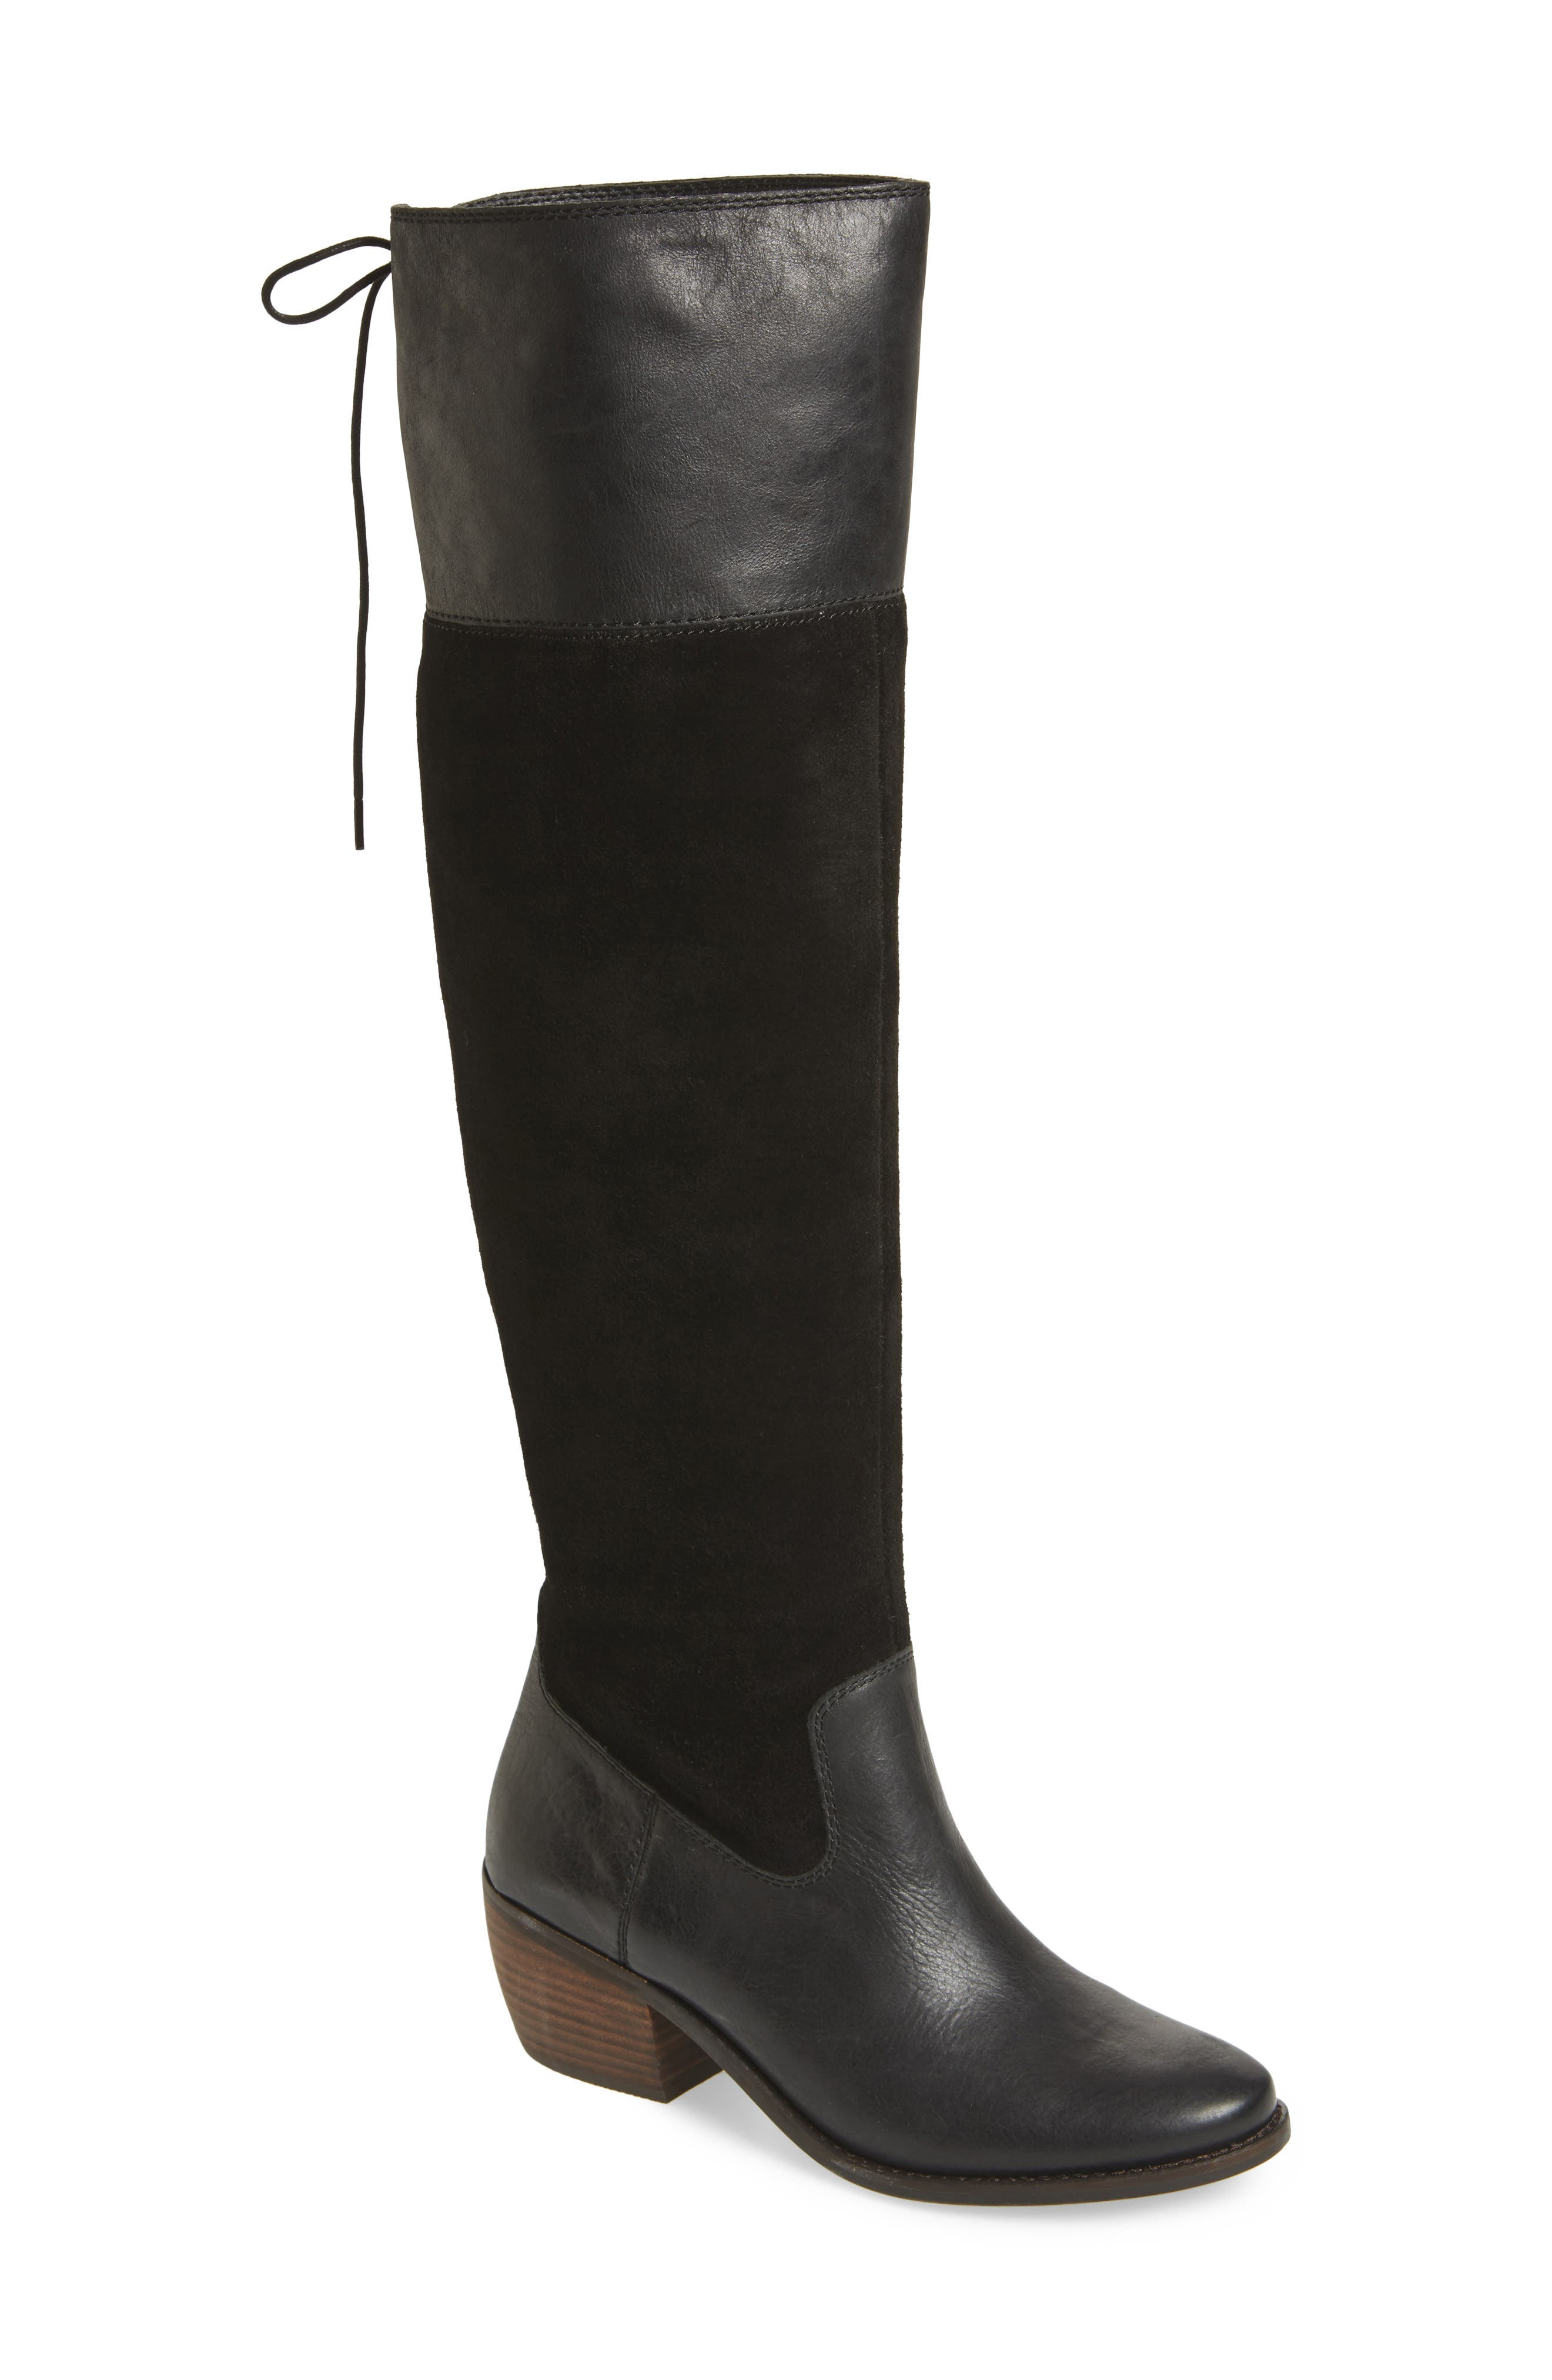 Komah Over the Knee Boot,                             Main thumbnail 1, color,                             001